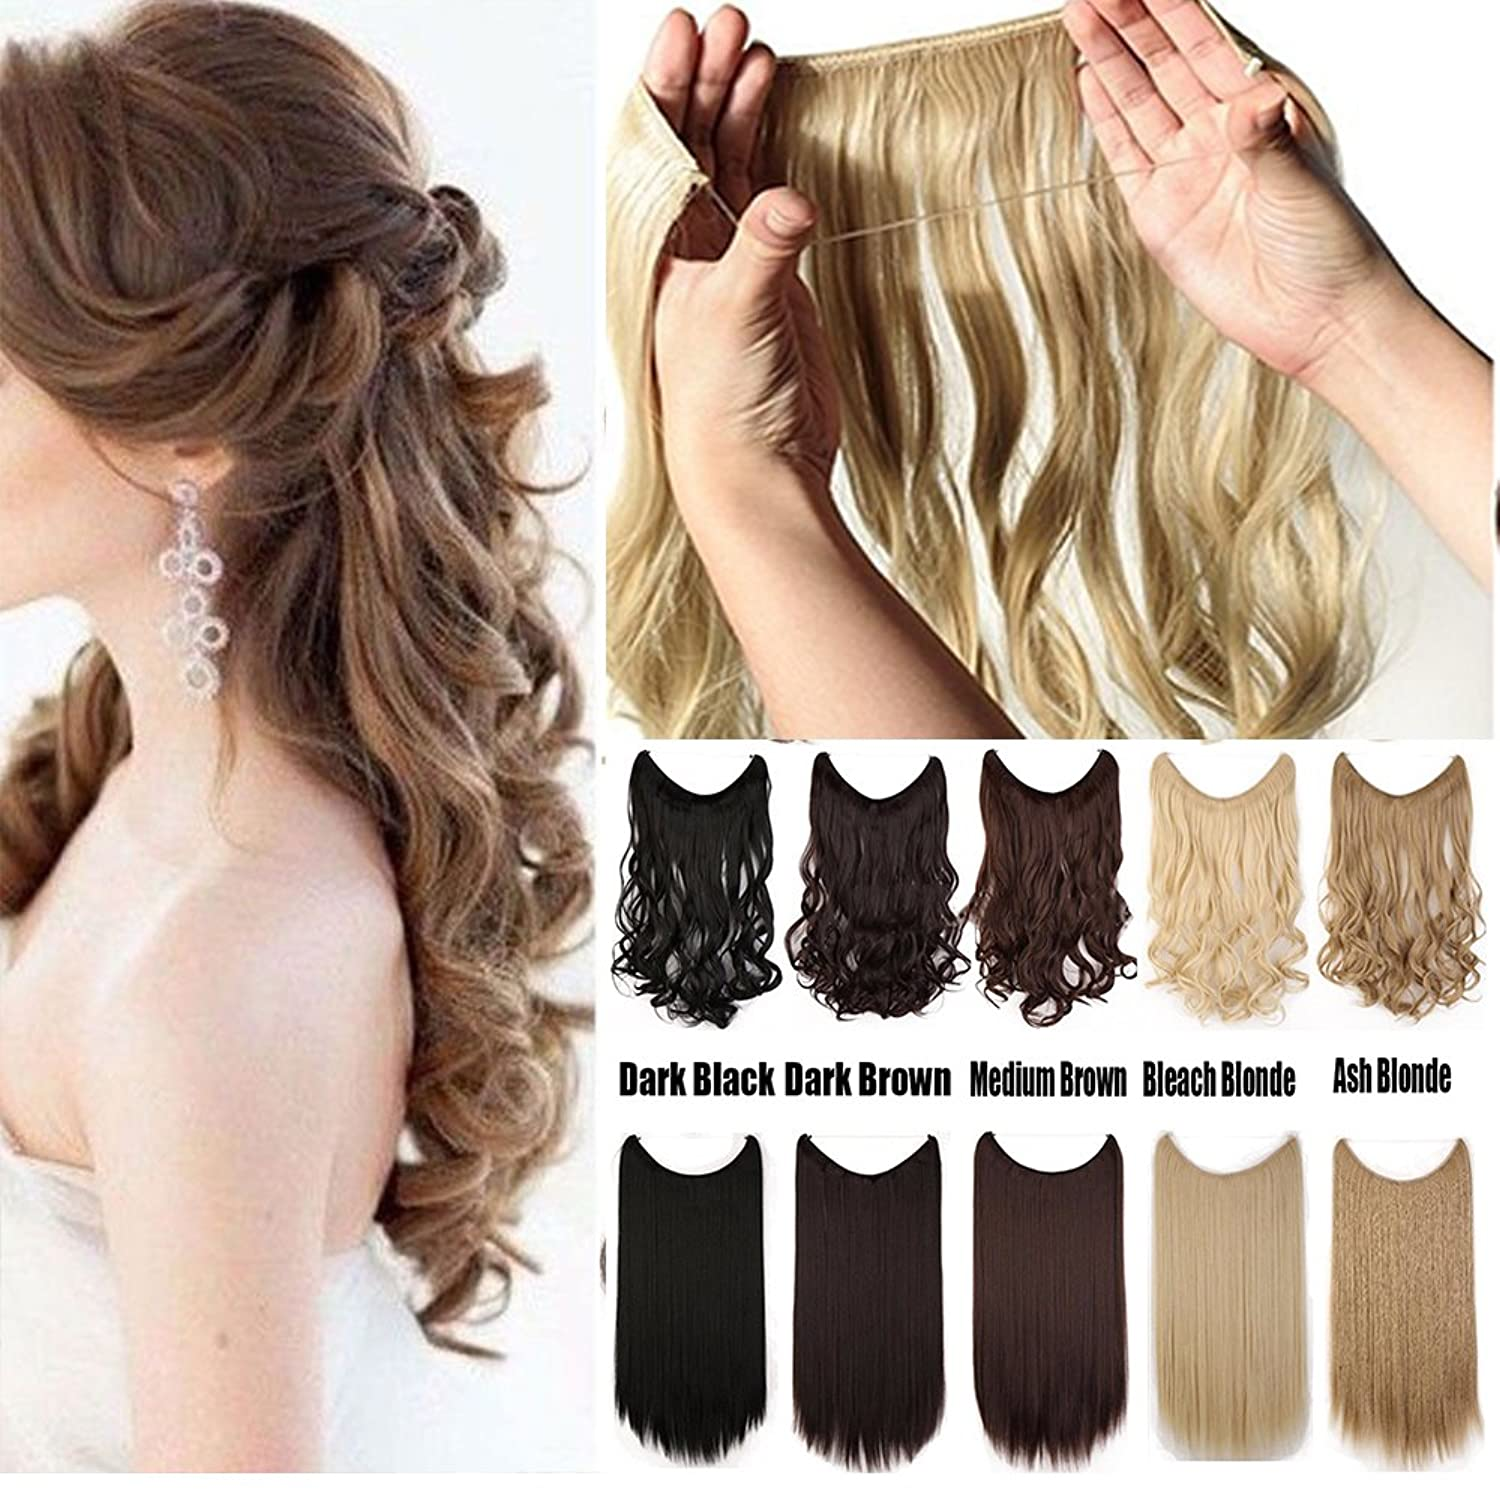 S Noilite Women Rubber Band Full Head Hair Extensions 24 125g Curly